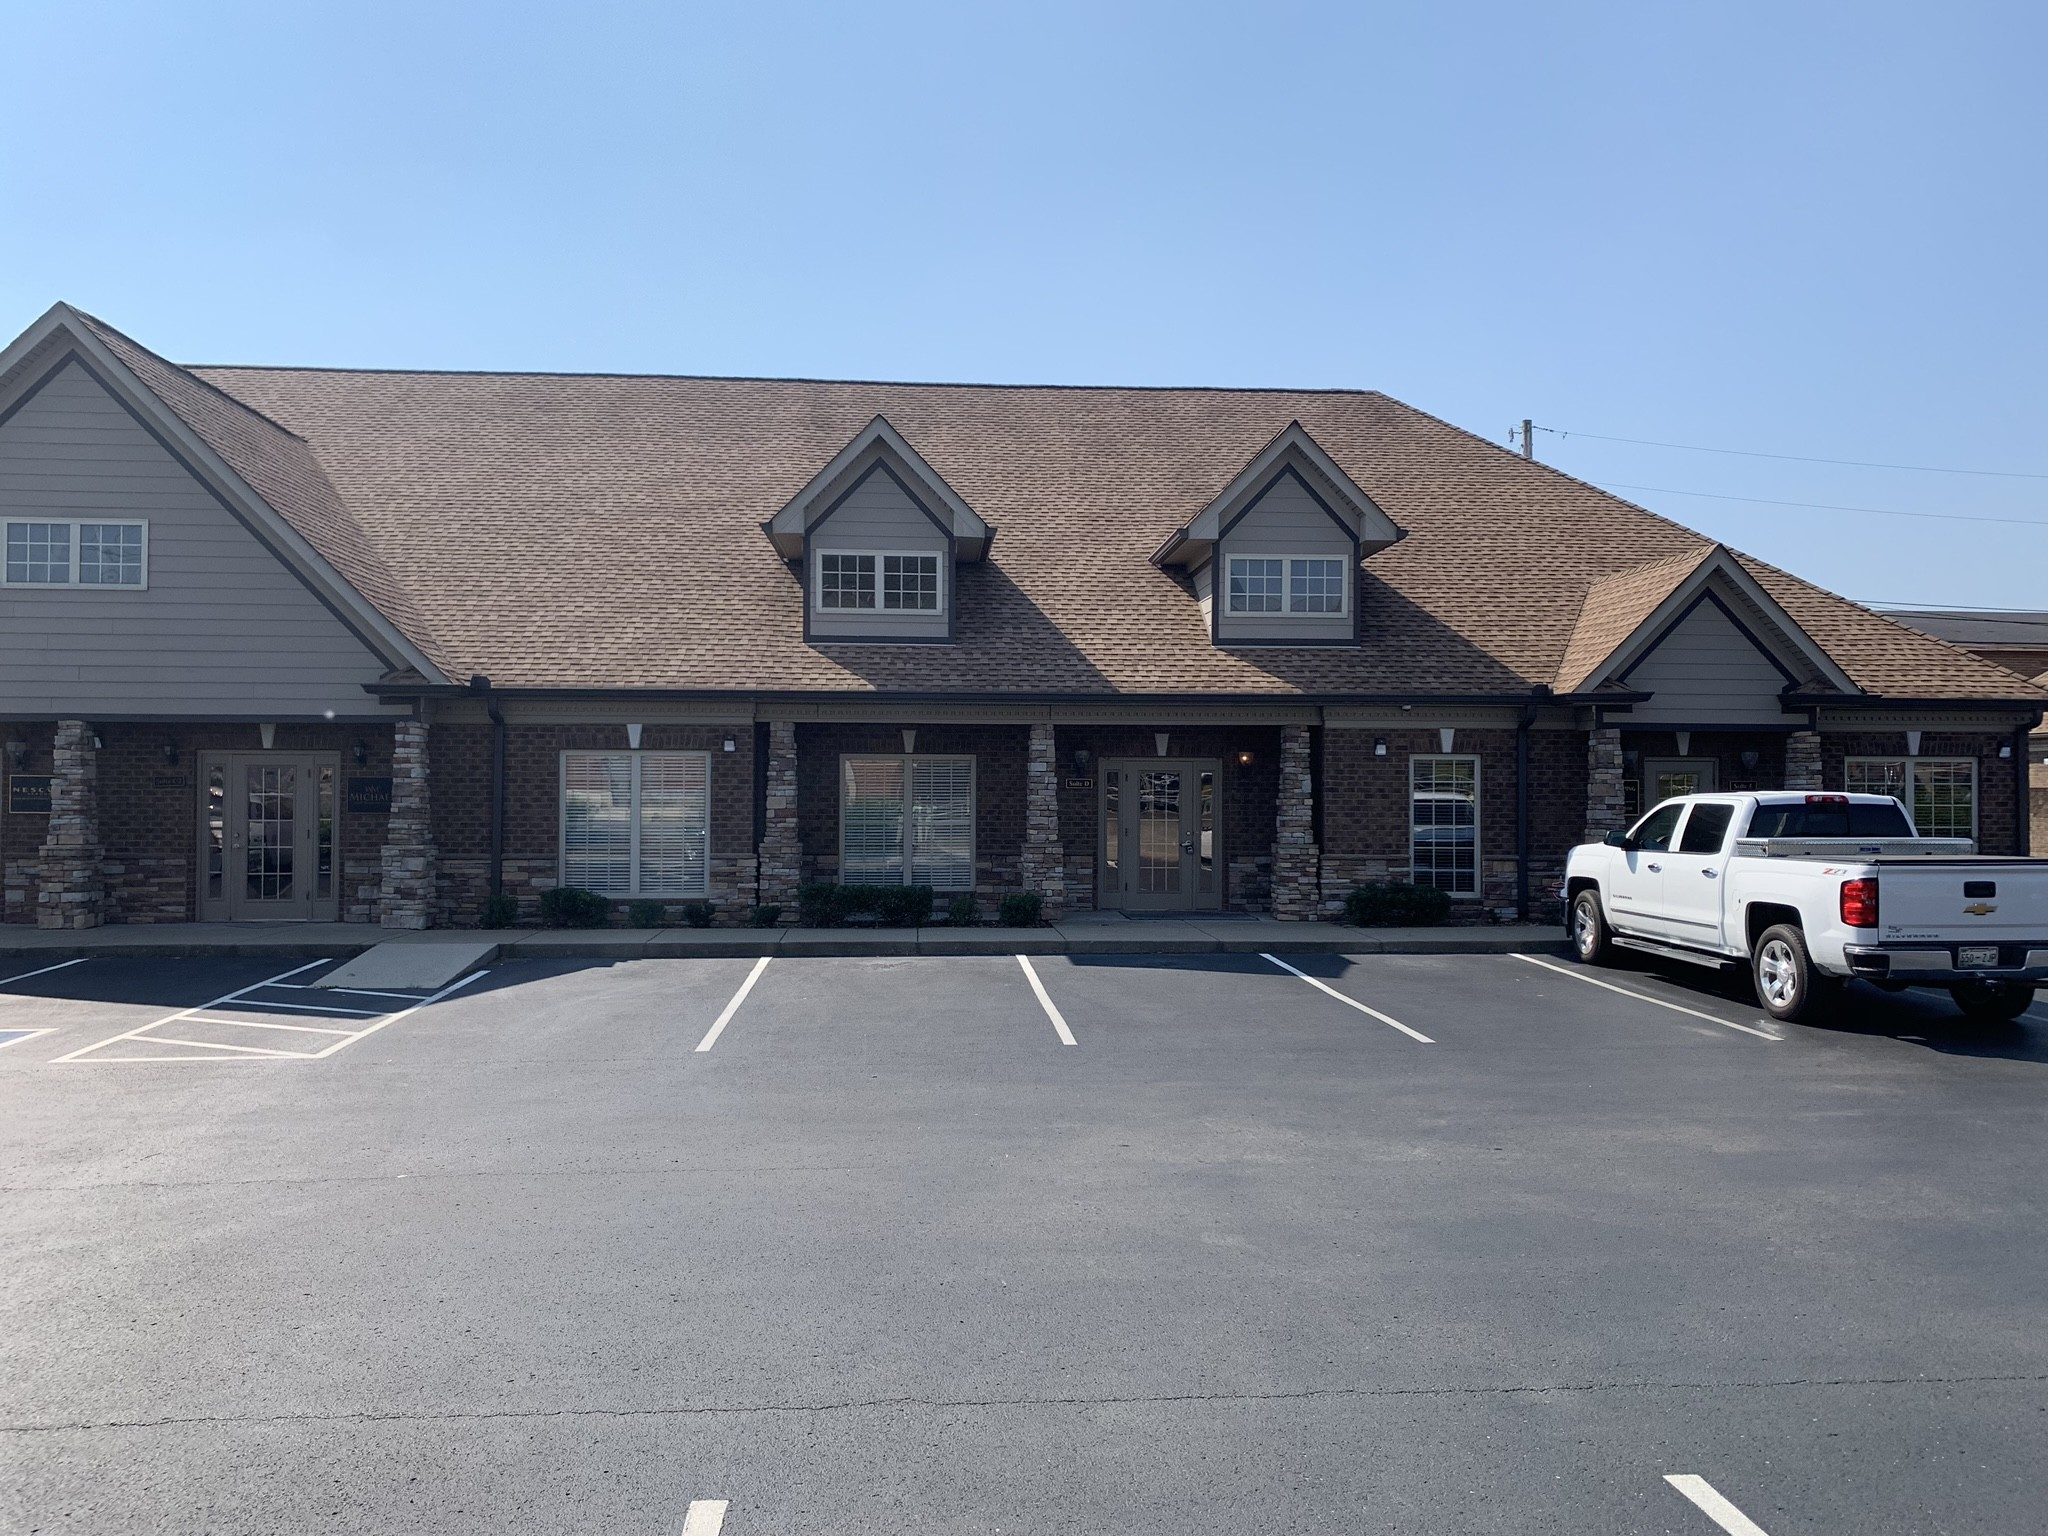 635N Main Property Photo - Shelbyville, TN real estate listing